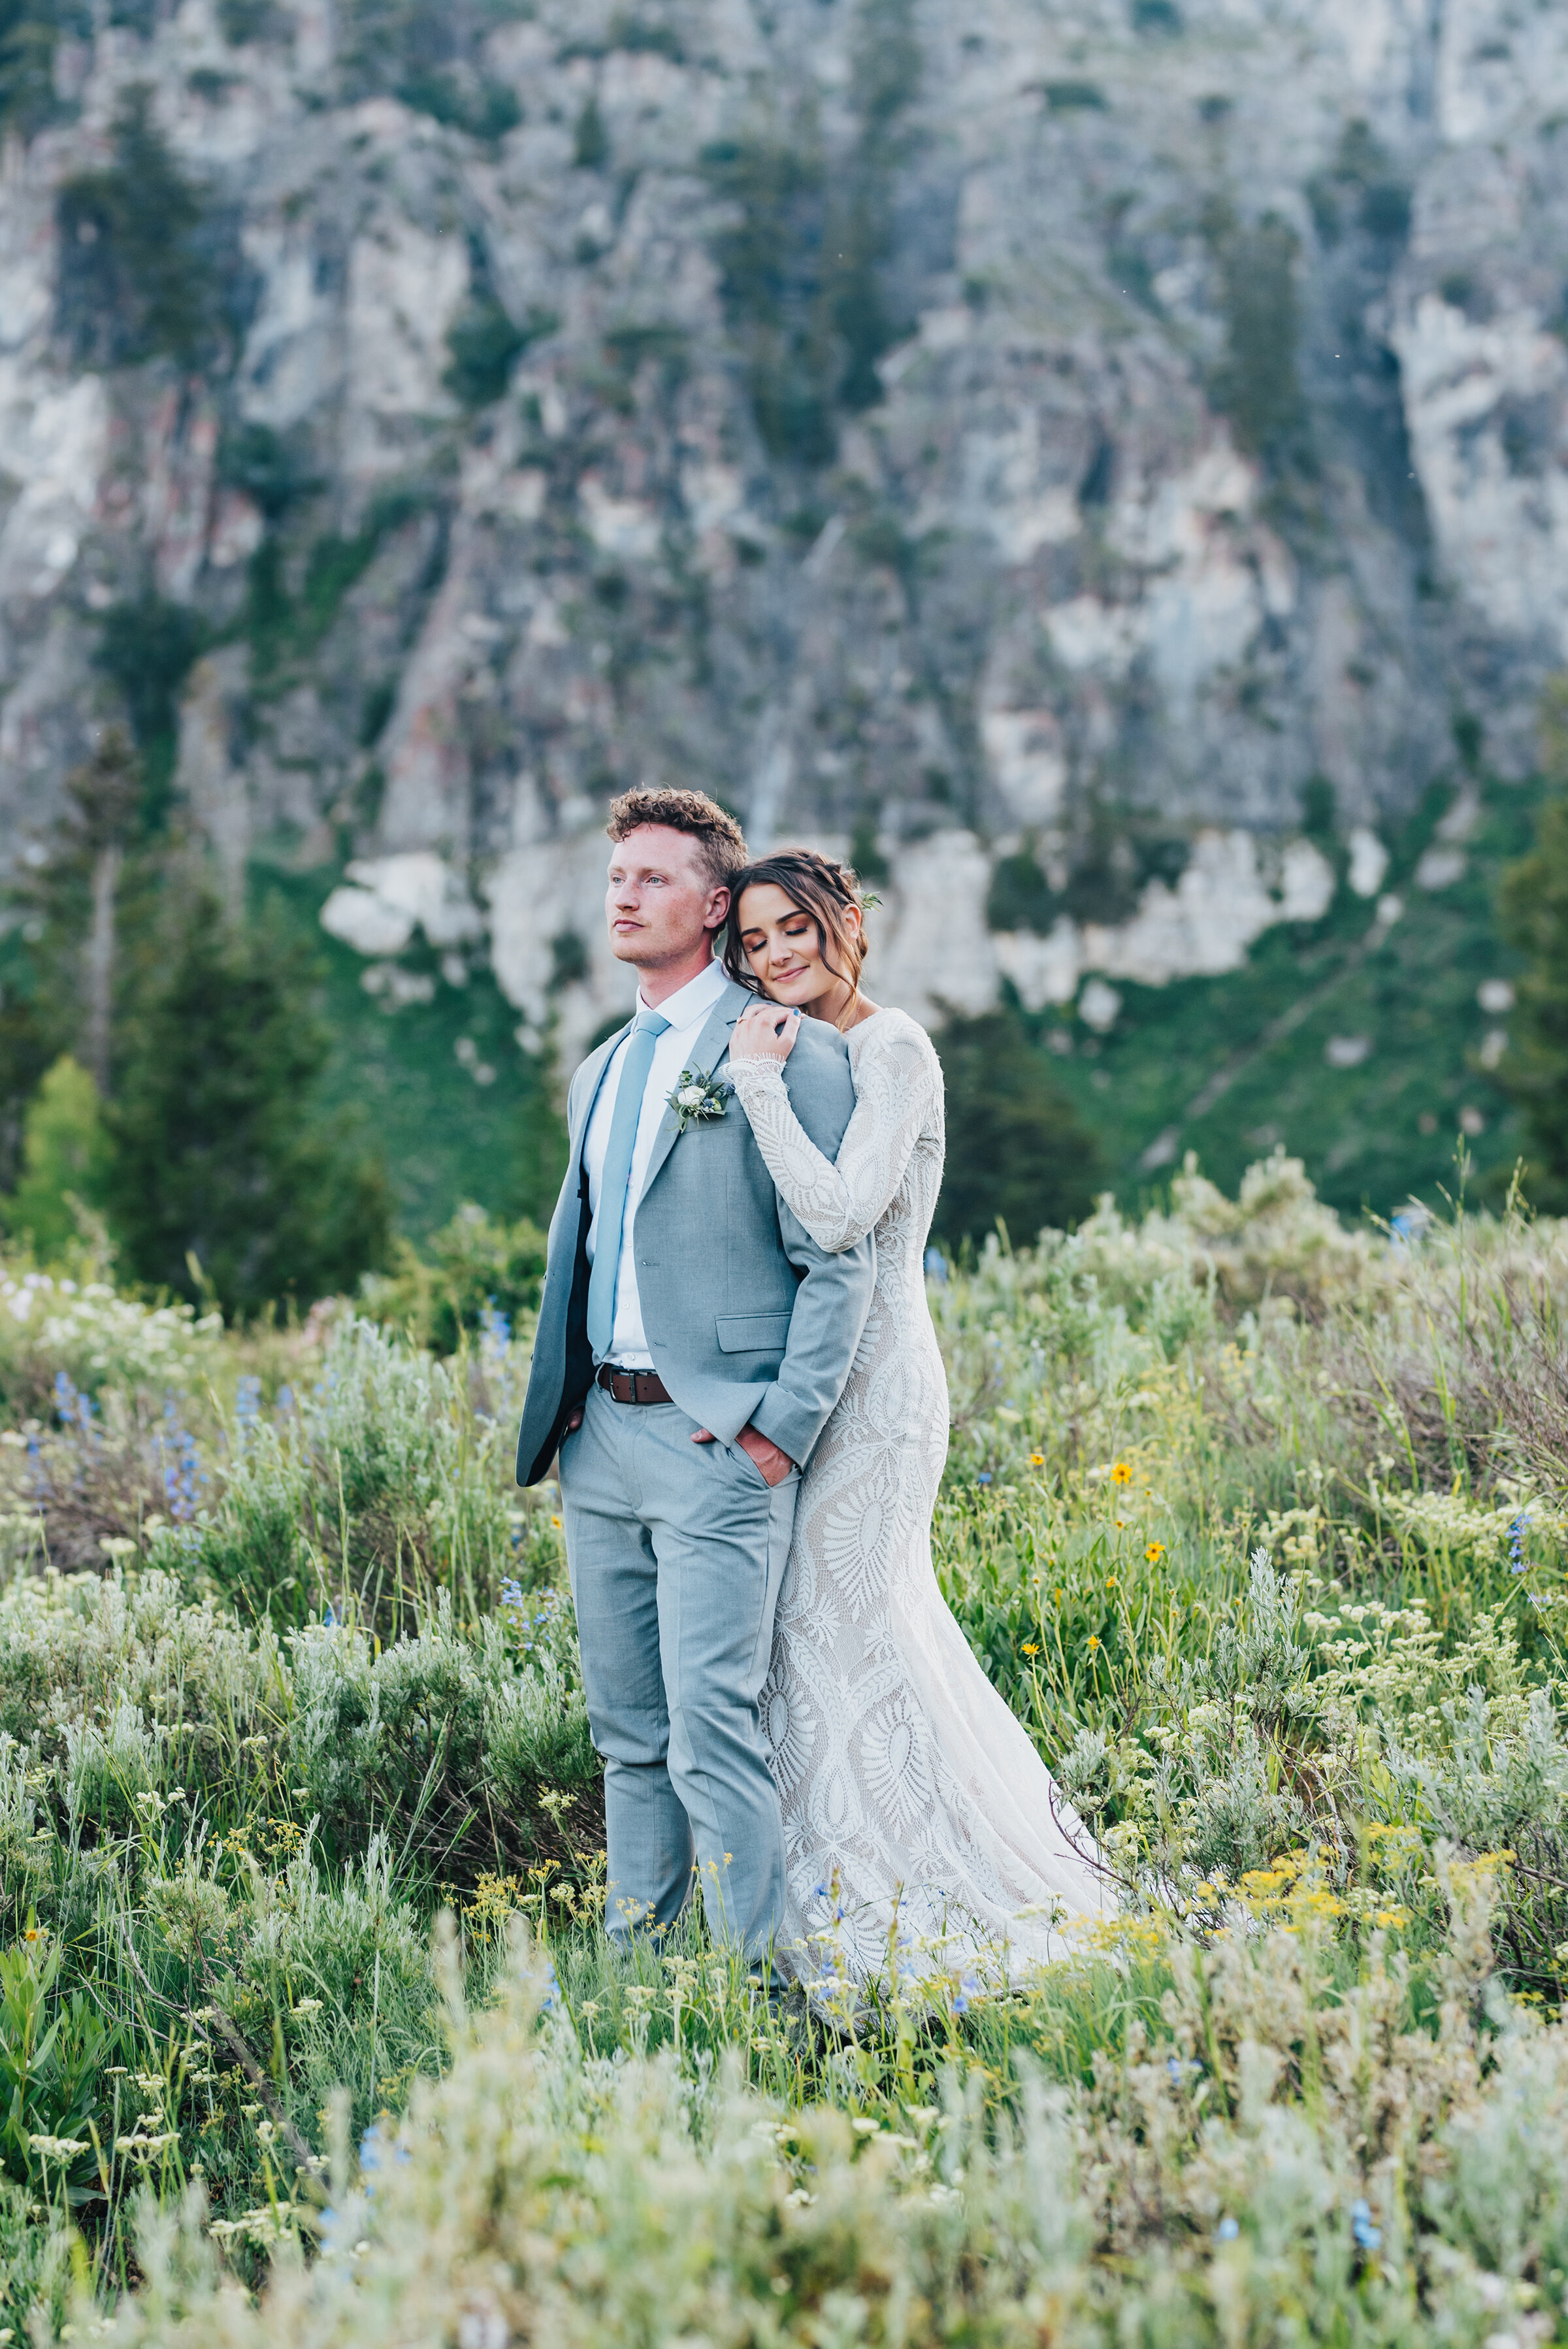 Gorgeous bride and groom surrounded by nature up Logan canyon for their formals. Kristi Alyse photography Logan Utah wedding photographer forest nature dreamy formals Logan canyon Tony Grove scenic bridals Northern Utah photographer Utah brides bride and groom Cache Valley #kristialysephotography #loganutahphotographer #tonygrove #logancanyon #utahweddingphotographer #bridals #formals #wildflowers #northernutah #utahbrides